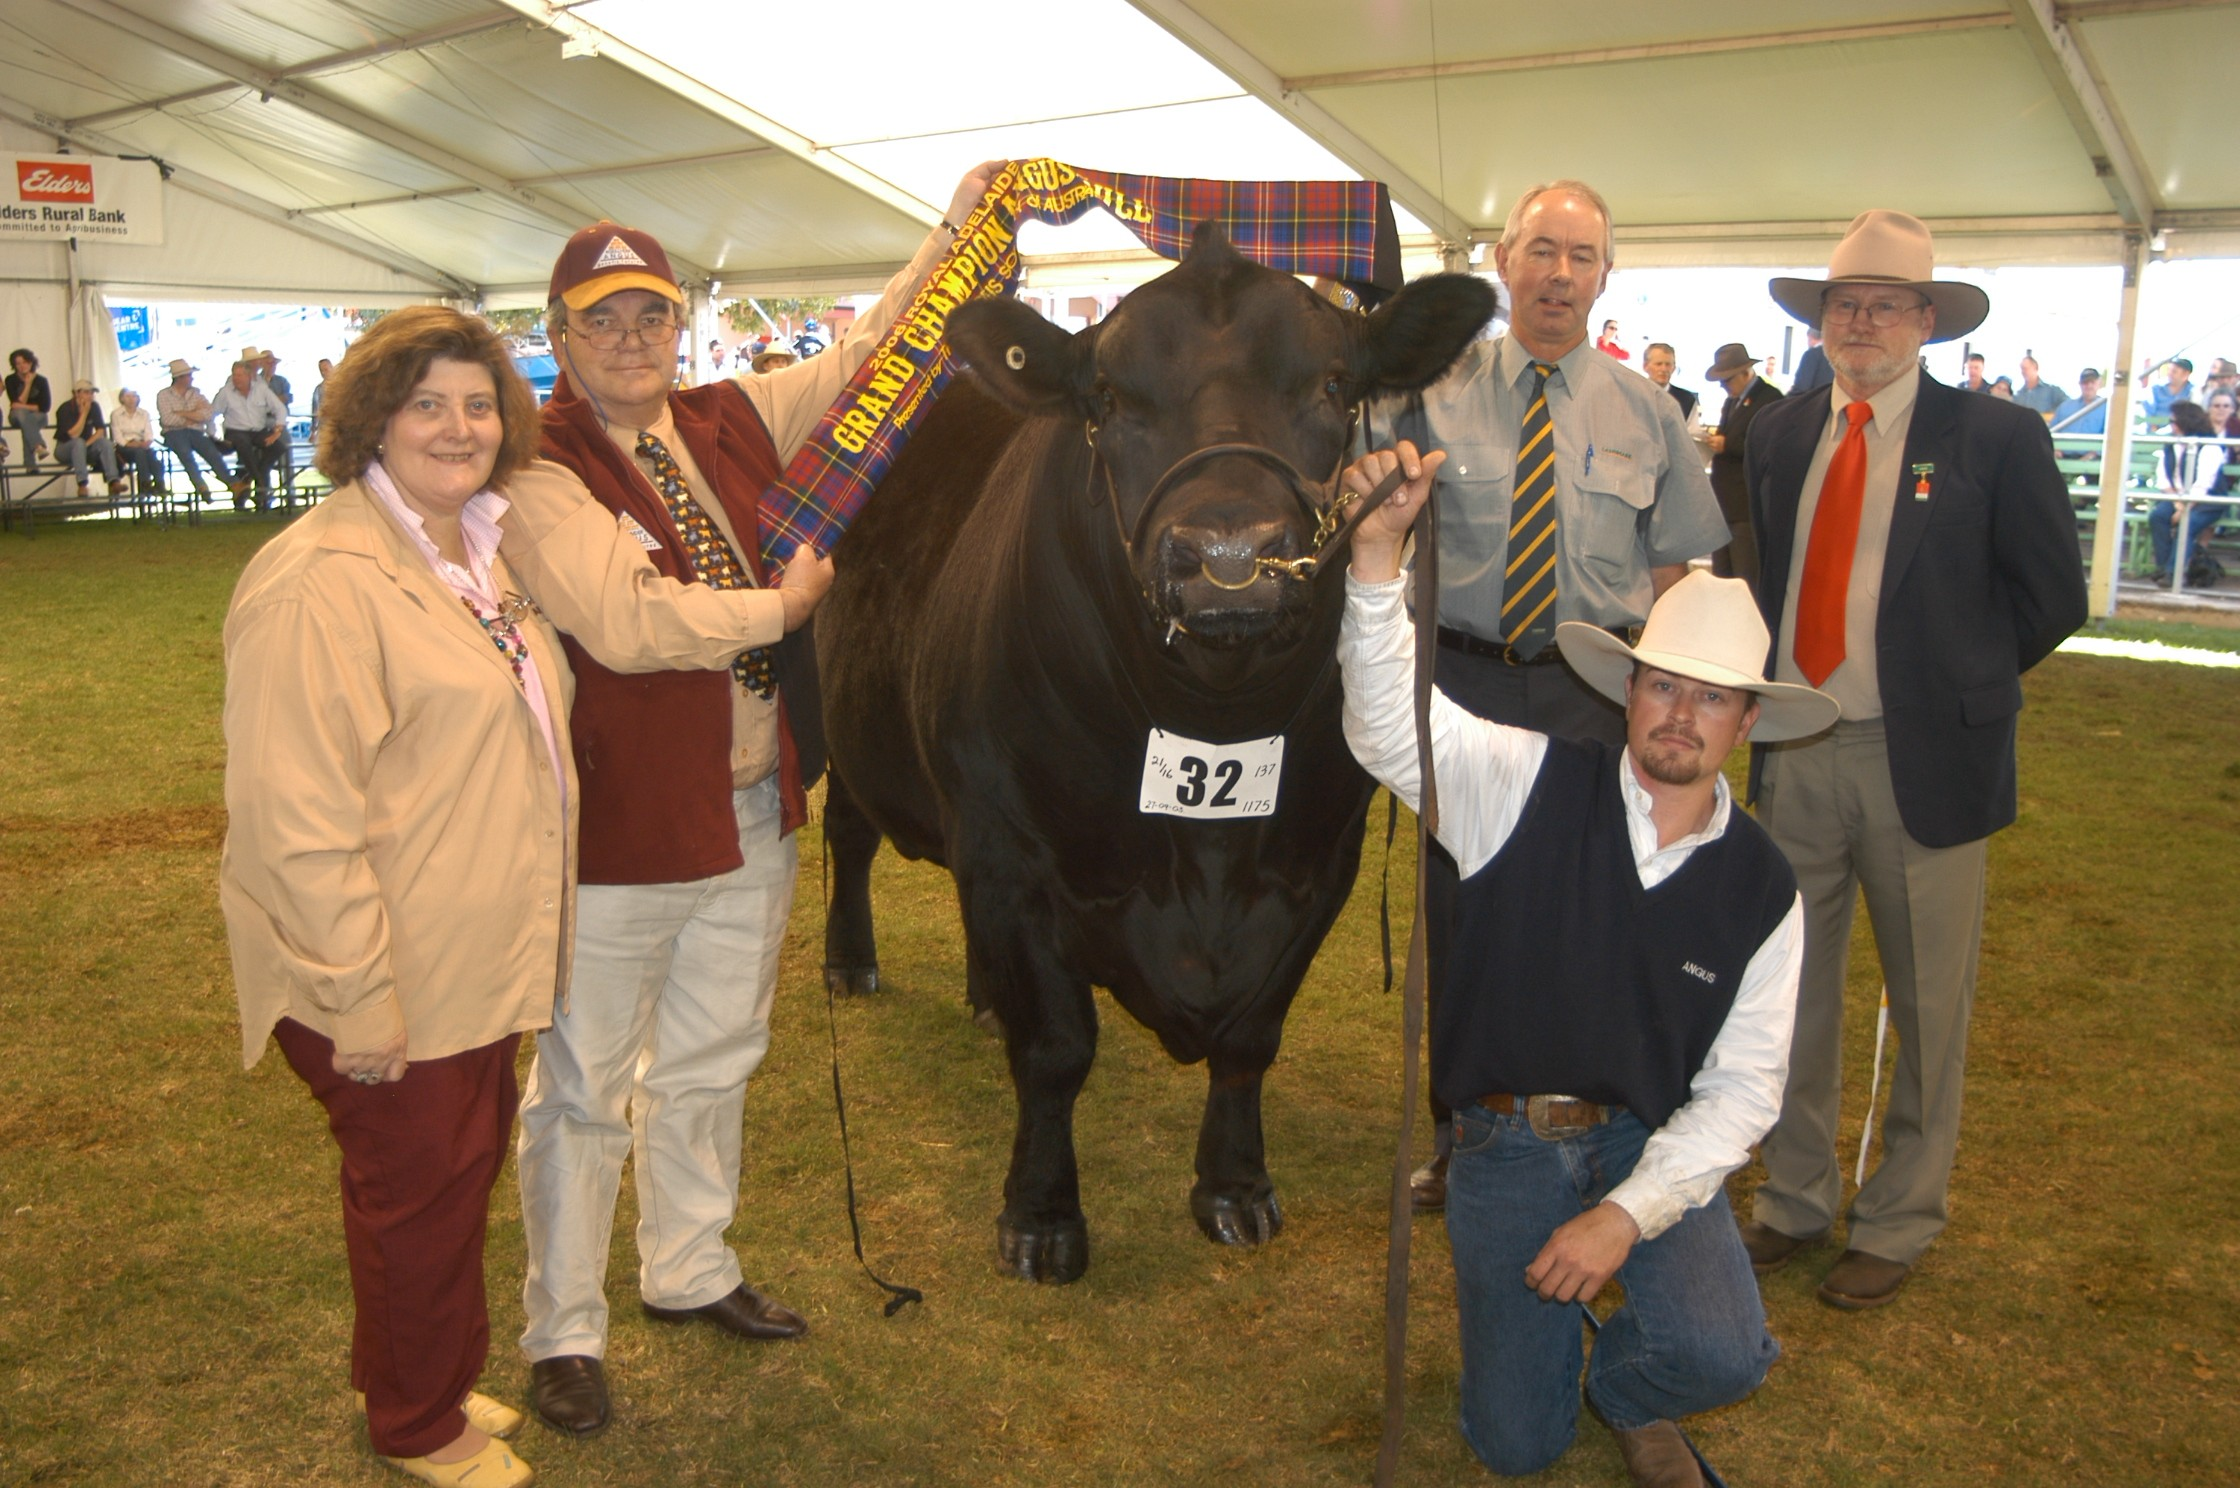 2006 Royal Adelaide Grand Champion Angus Bull